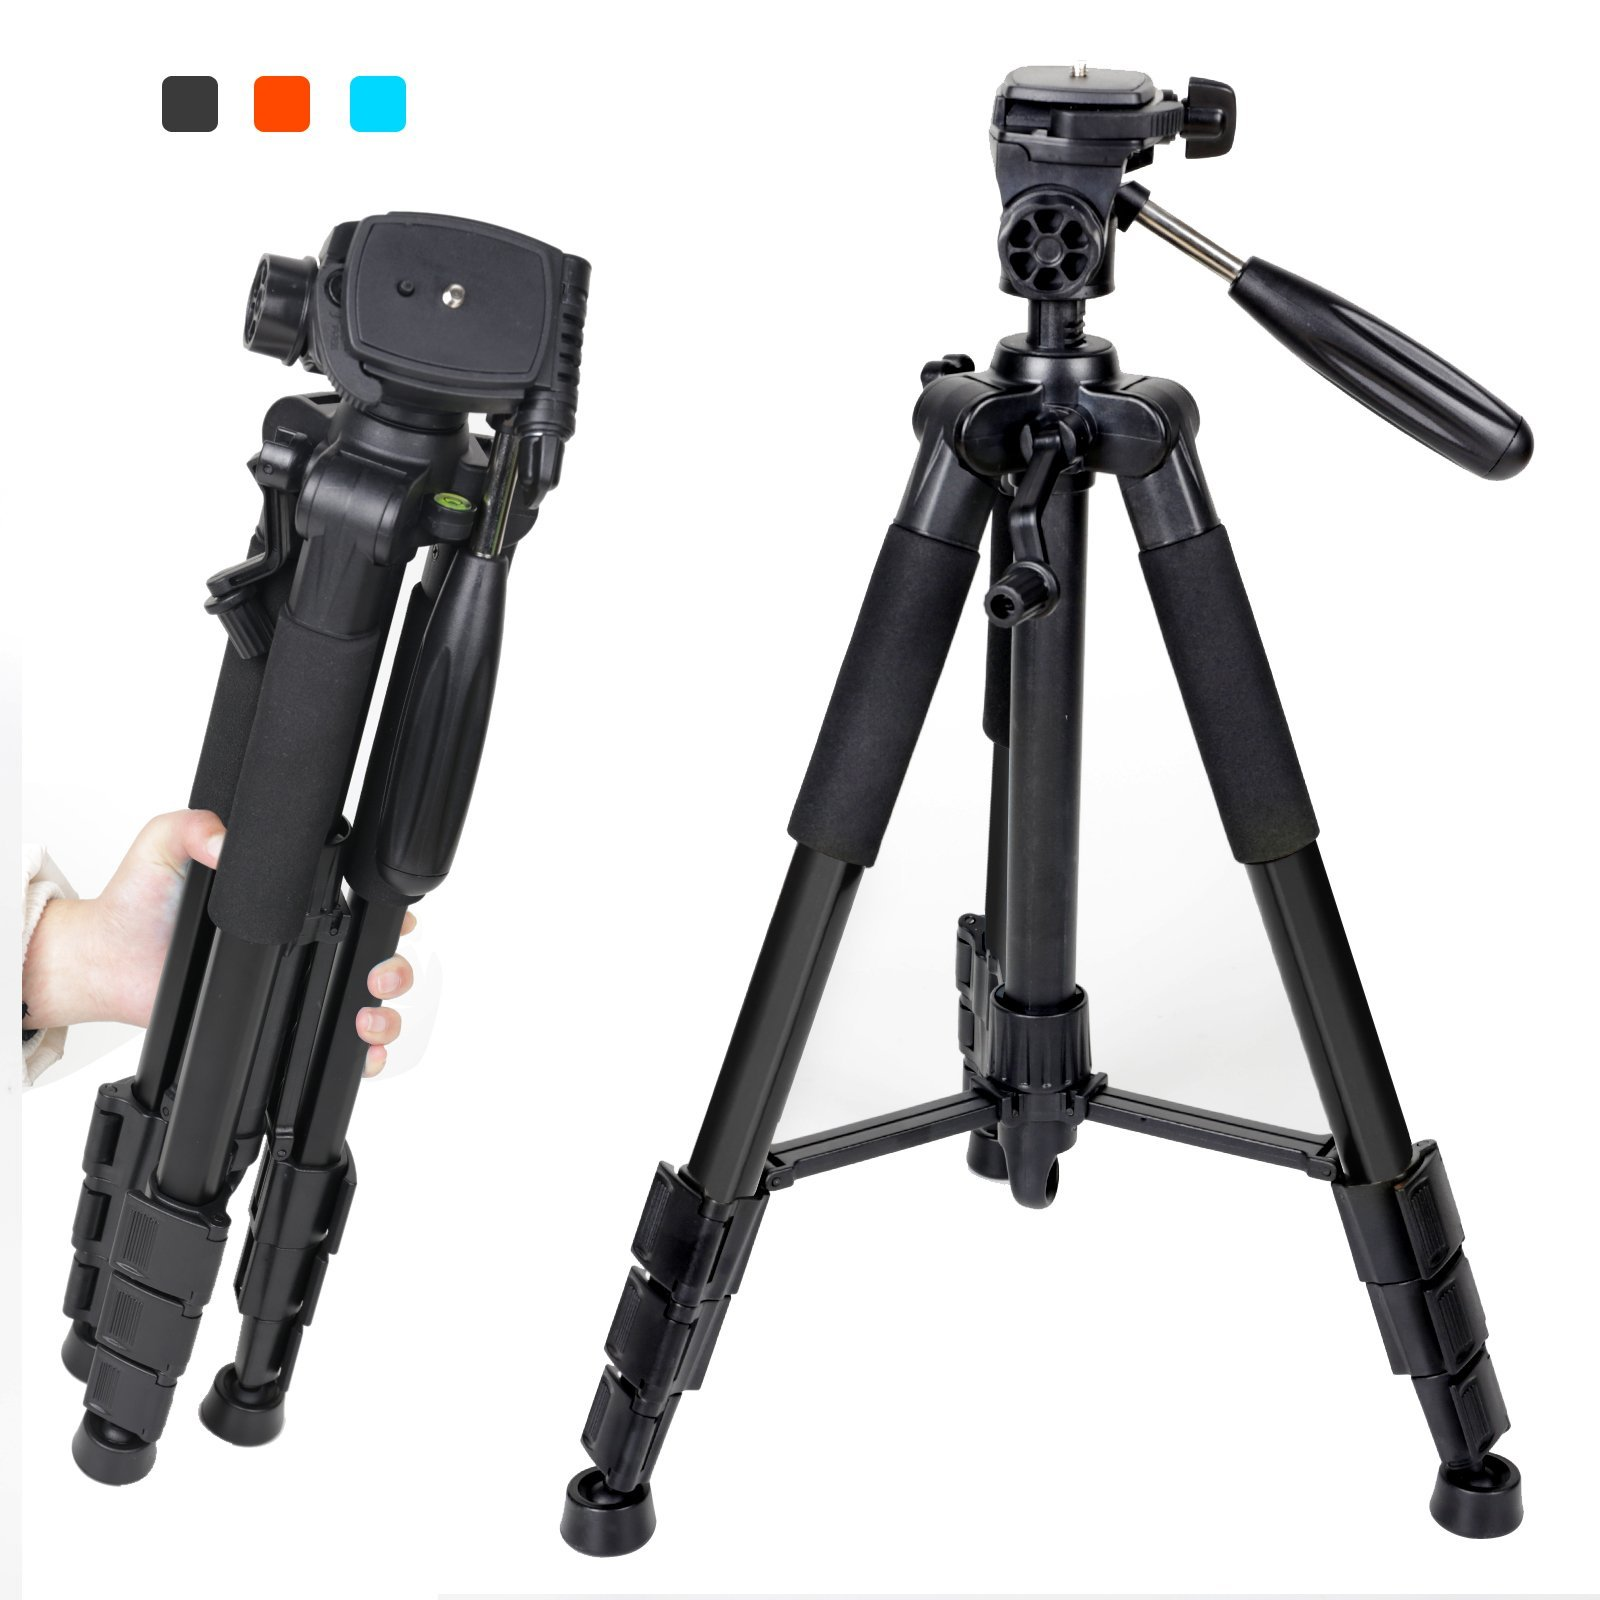 Zomei Q111 Flexible Portable 55'' Aluminium Tripod Compact Lightweight 4s Camera Stand with 1/4 Mount 3-Way Panhead and Carrying Bag for Digital DSLR EOS Canon Nikon Sony Panasonic Samsung Black